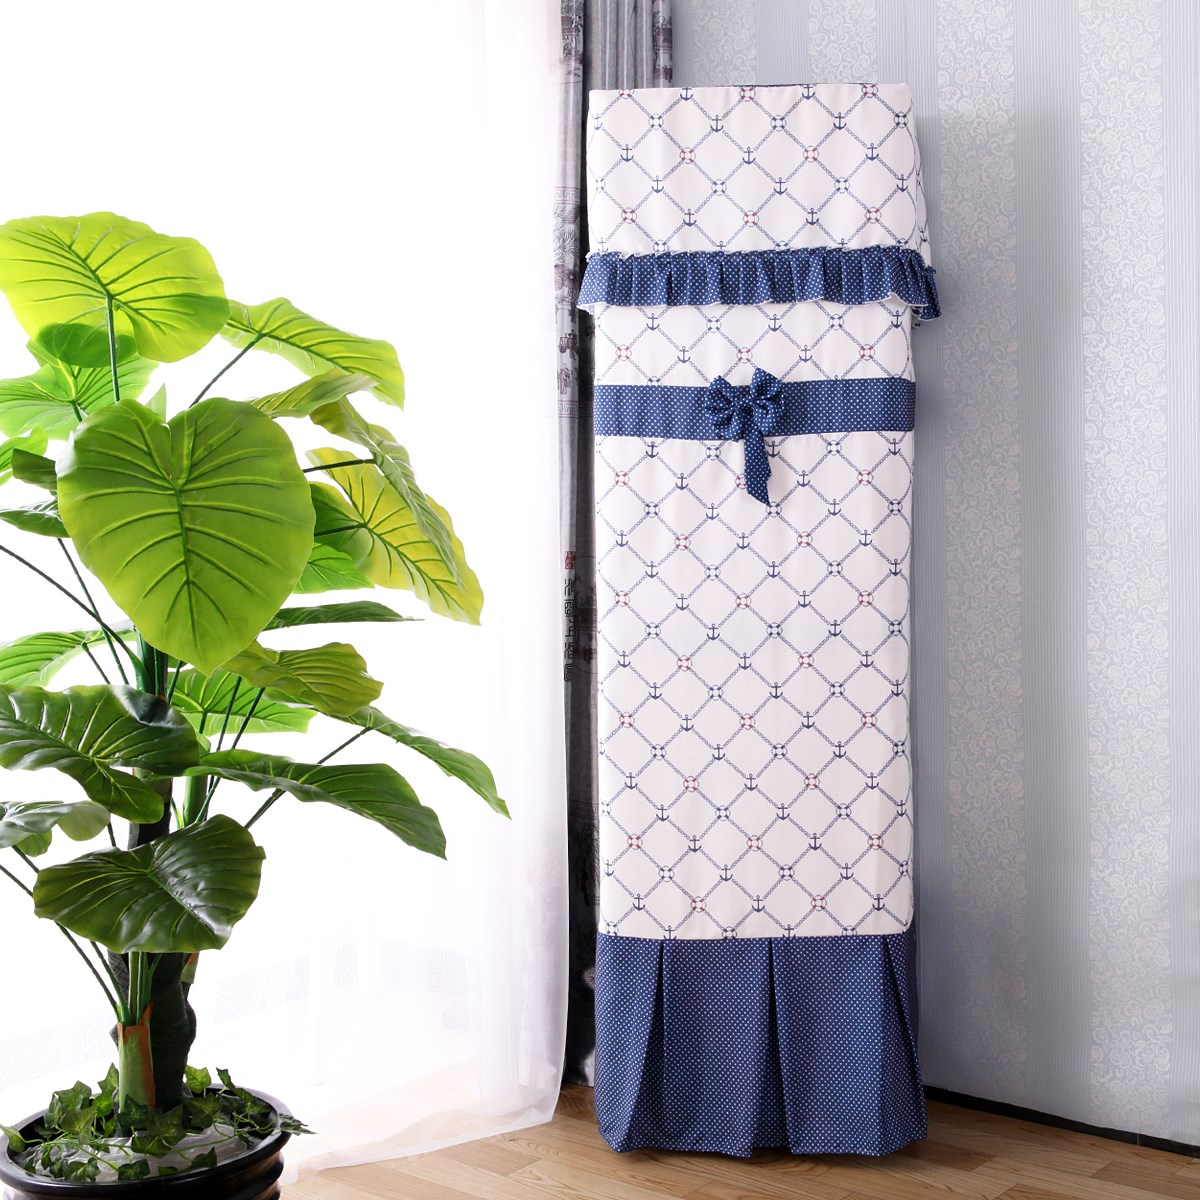 Vertical air conditioner cover cloth cover of air conditioner cabinet 2 big hood lace boot does not take three